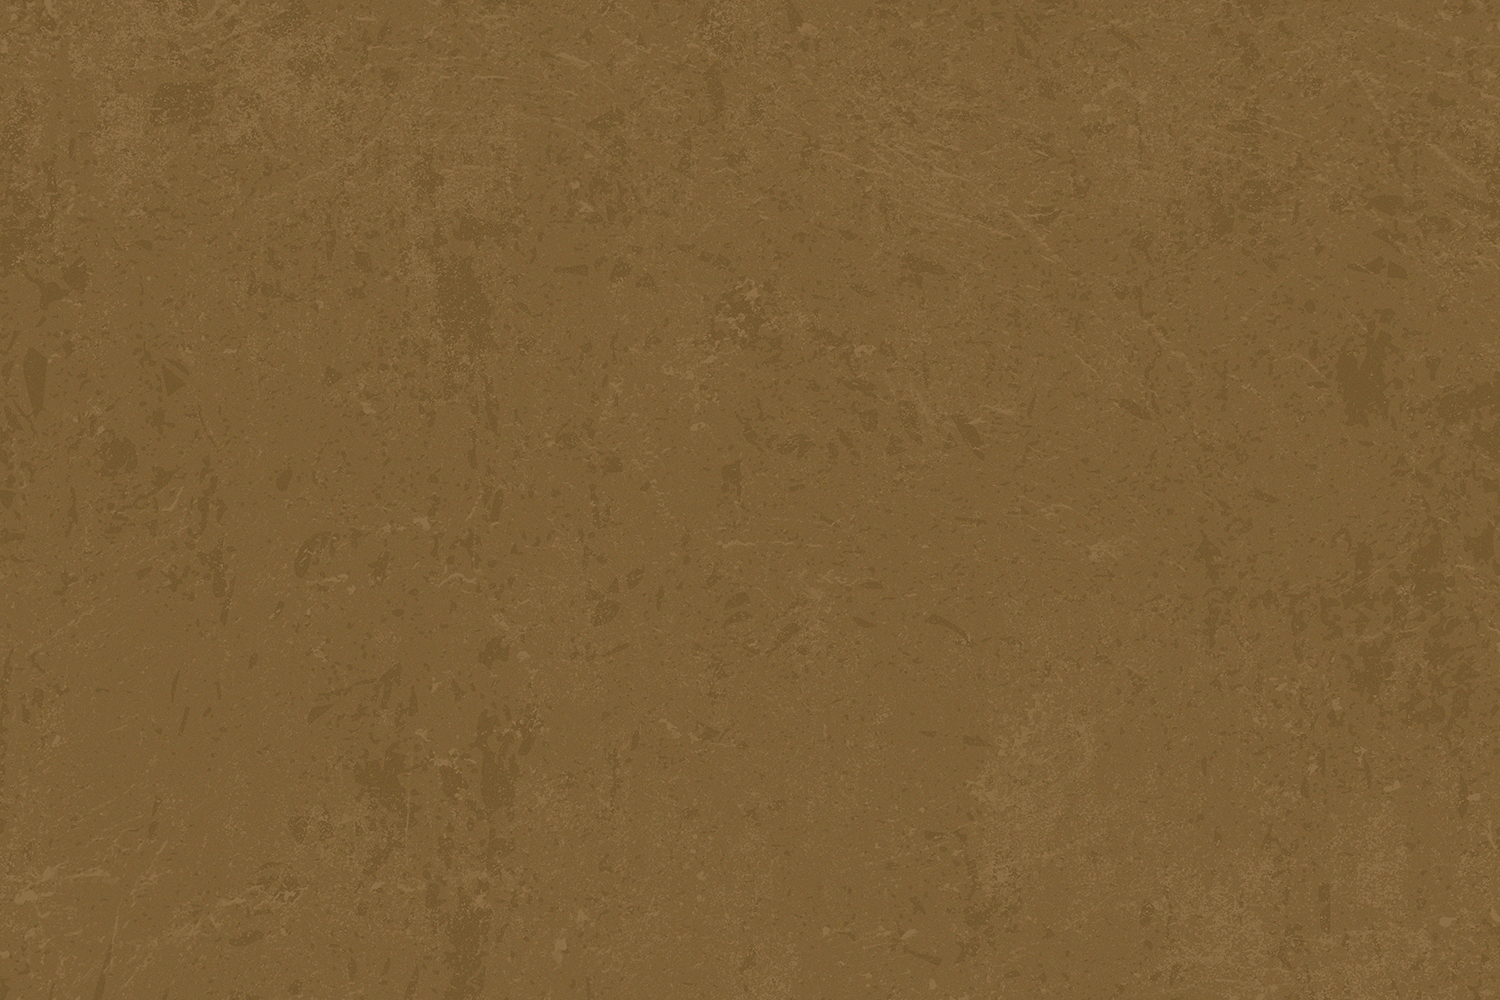 Grunge Texture Backgrounds example image 14